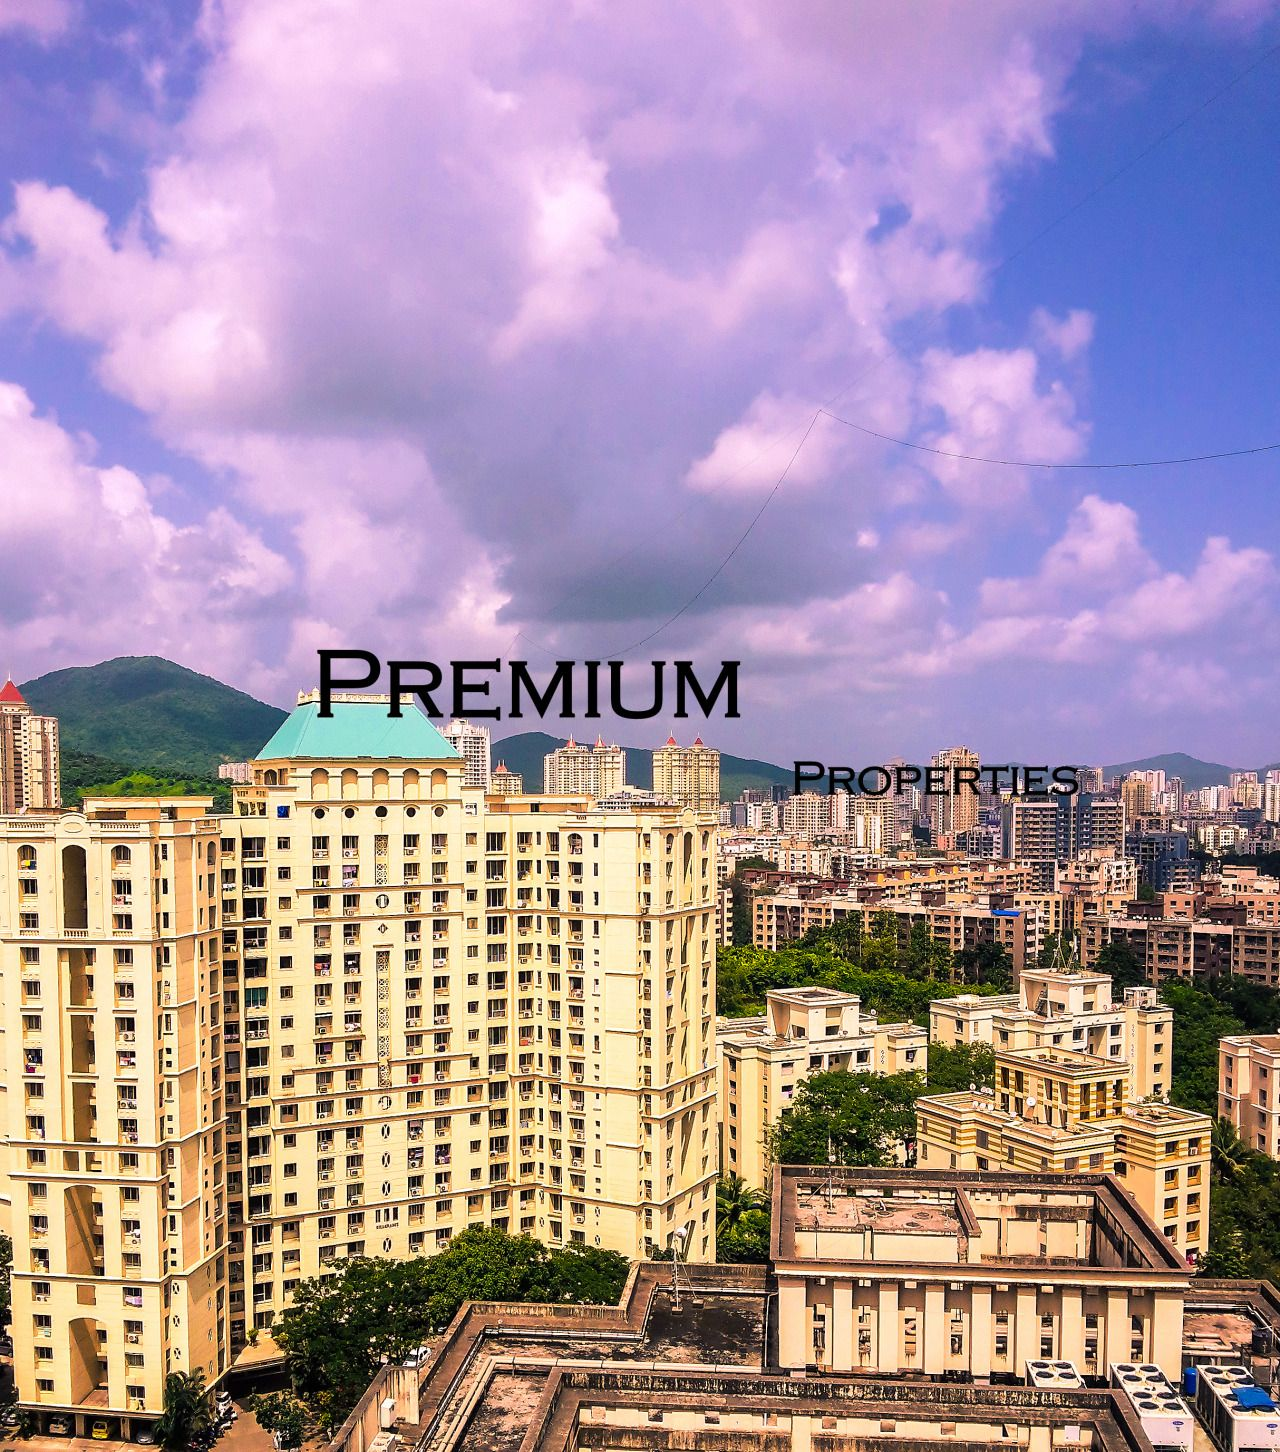 3 bedroom apartments at Hiranandani Thane https://realtythane.blogspot.in/2014/04/brand-new-3-bed-room-apartment-for-sale.html https://realtythane.blogspot.in/